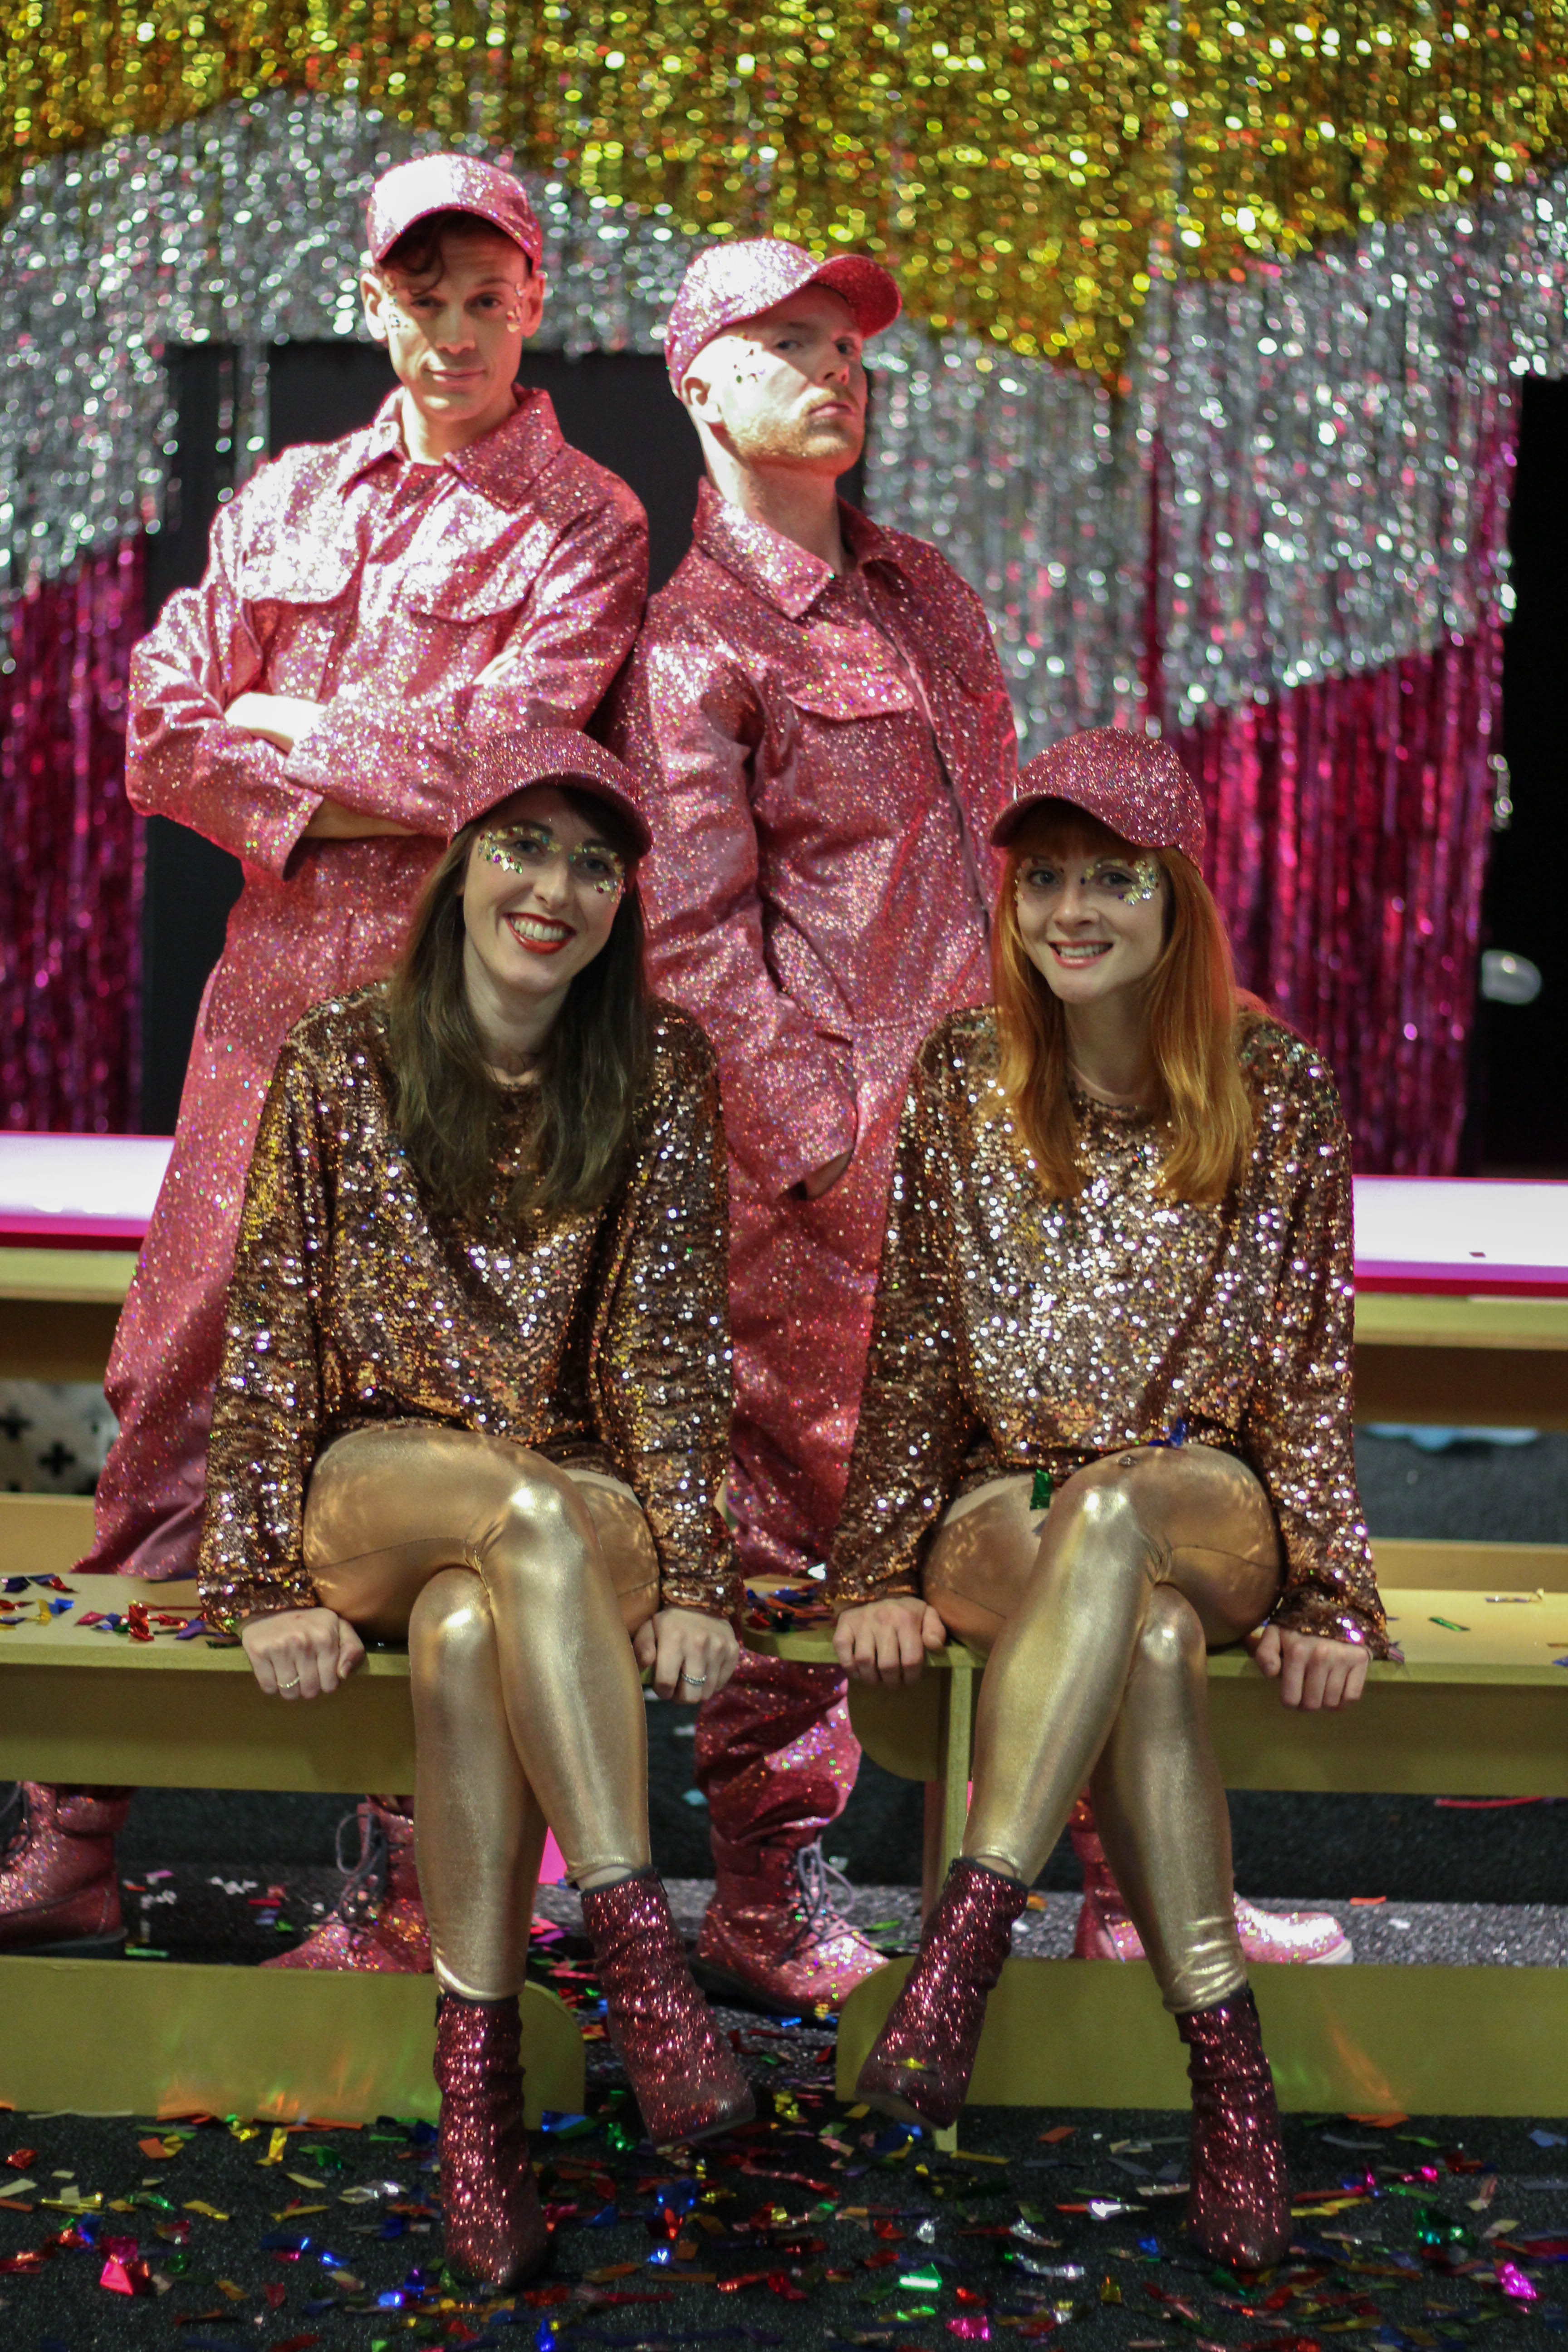 A dance troupe consisting of 2 girls and two boys sitting on a bench wearing gold and pink sequin costumes with glitter flocked baseball caps pose for photos for Selfridges Christmas Entertainment